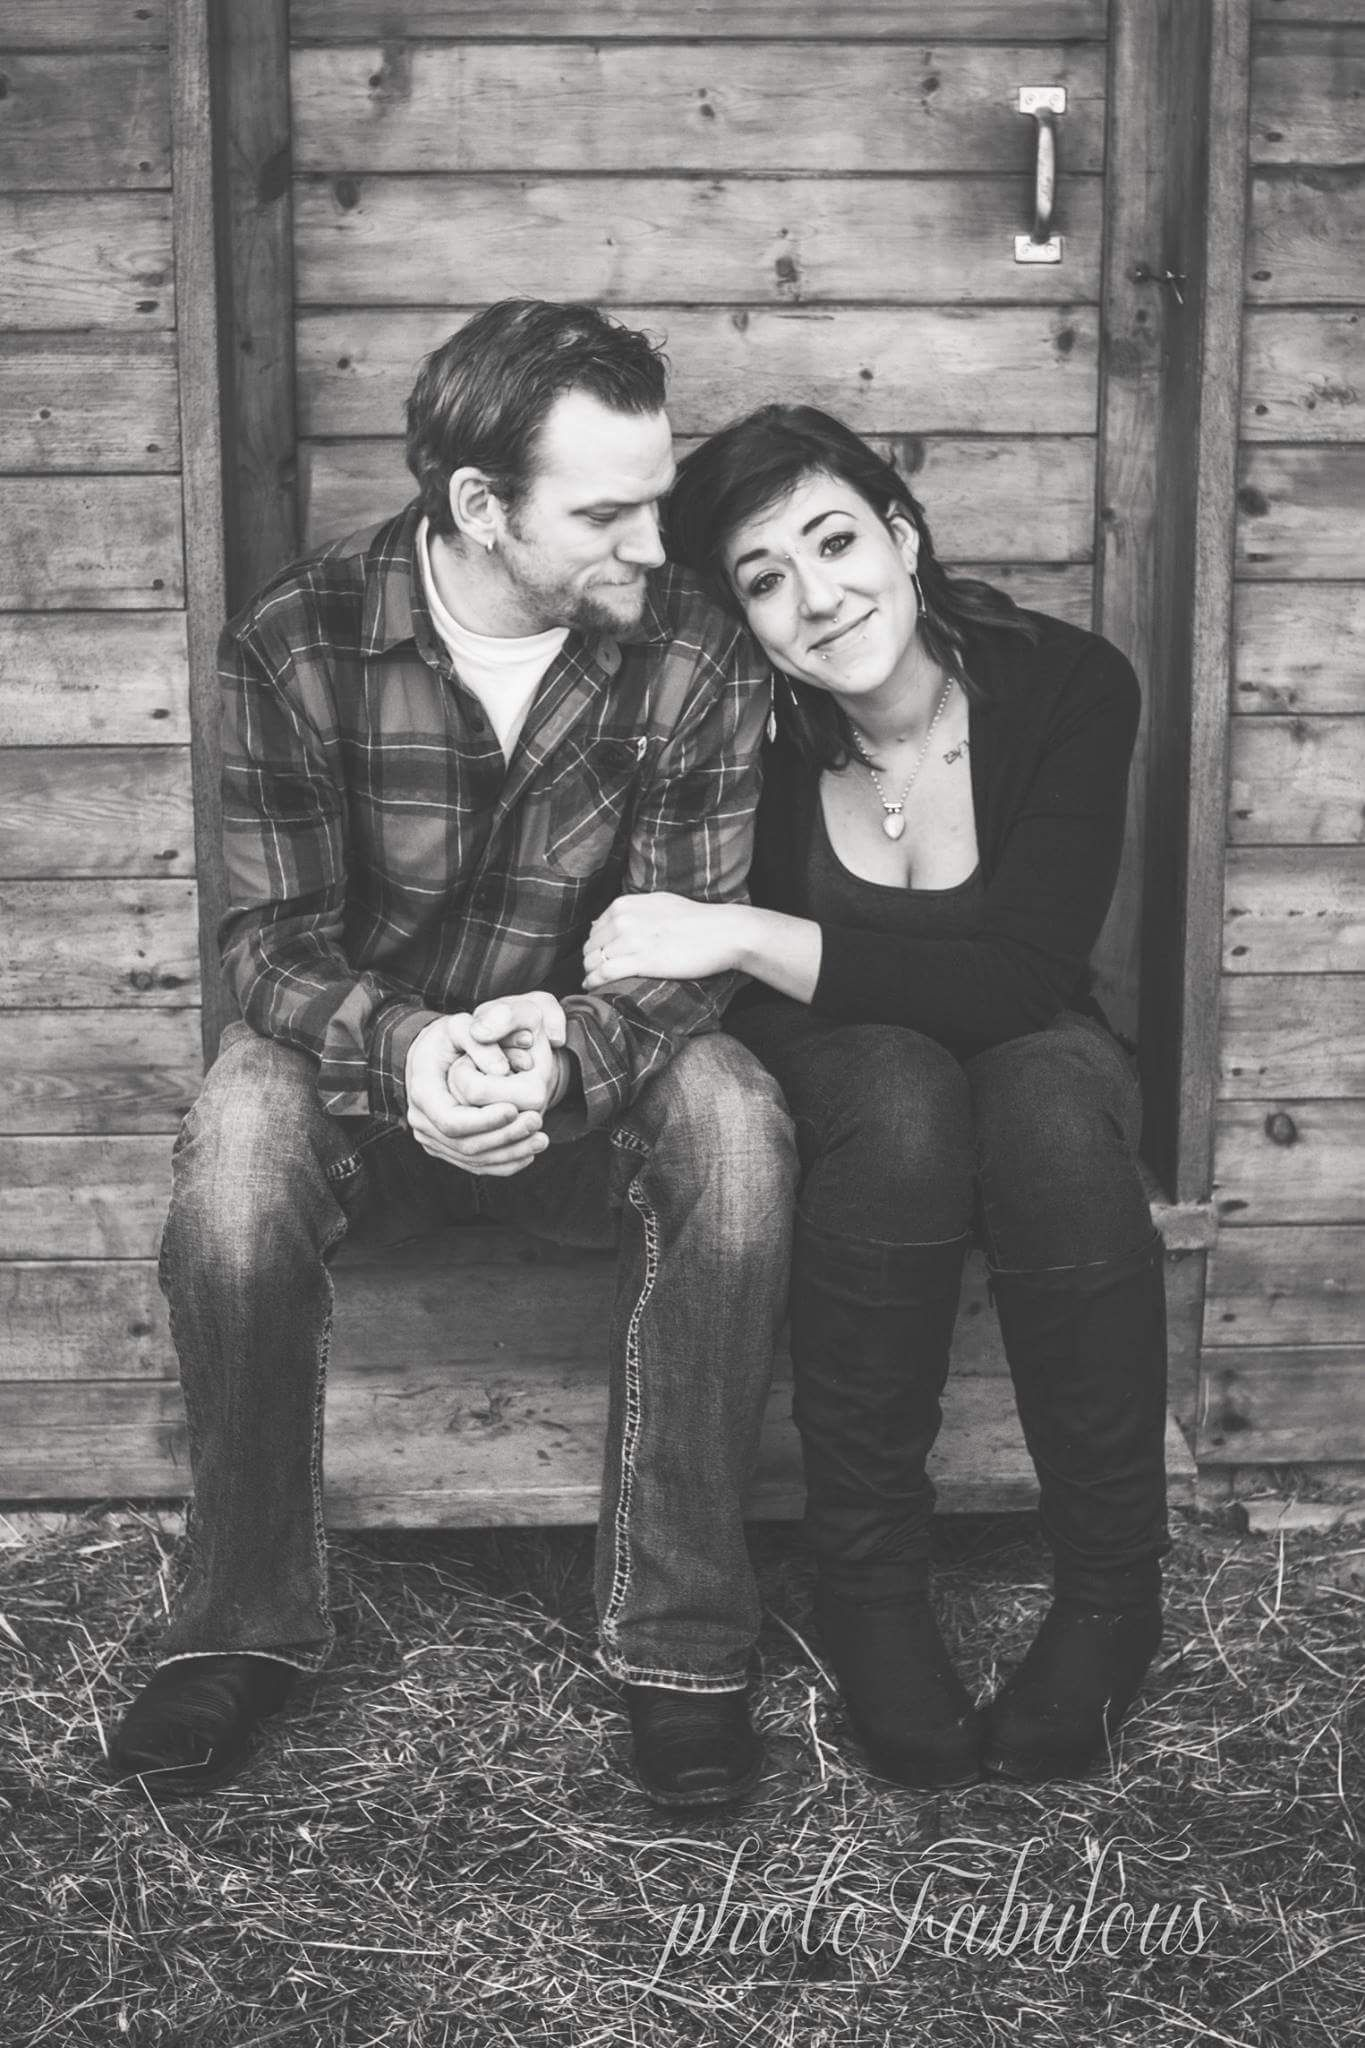 Vote for them to be the Calgary OneLove Couple  https://www.facebook.com/OneLoveWeddingExperience/app/512541485429310/